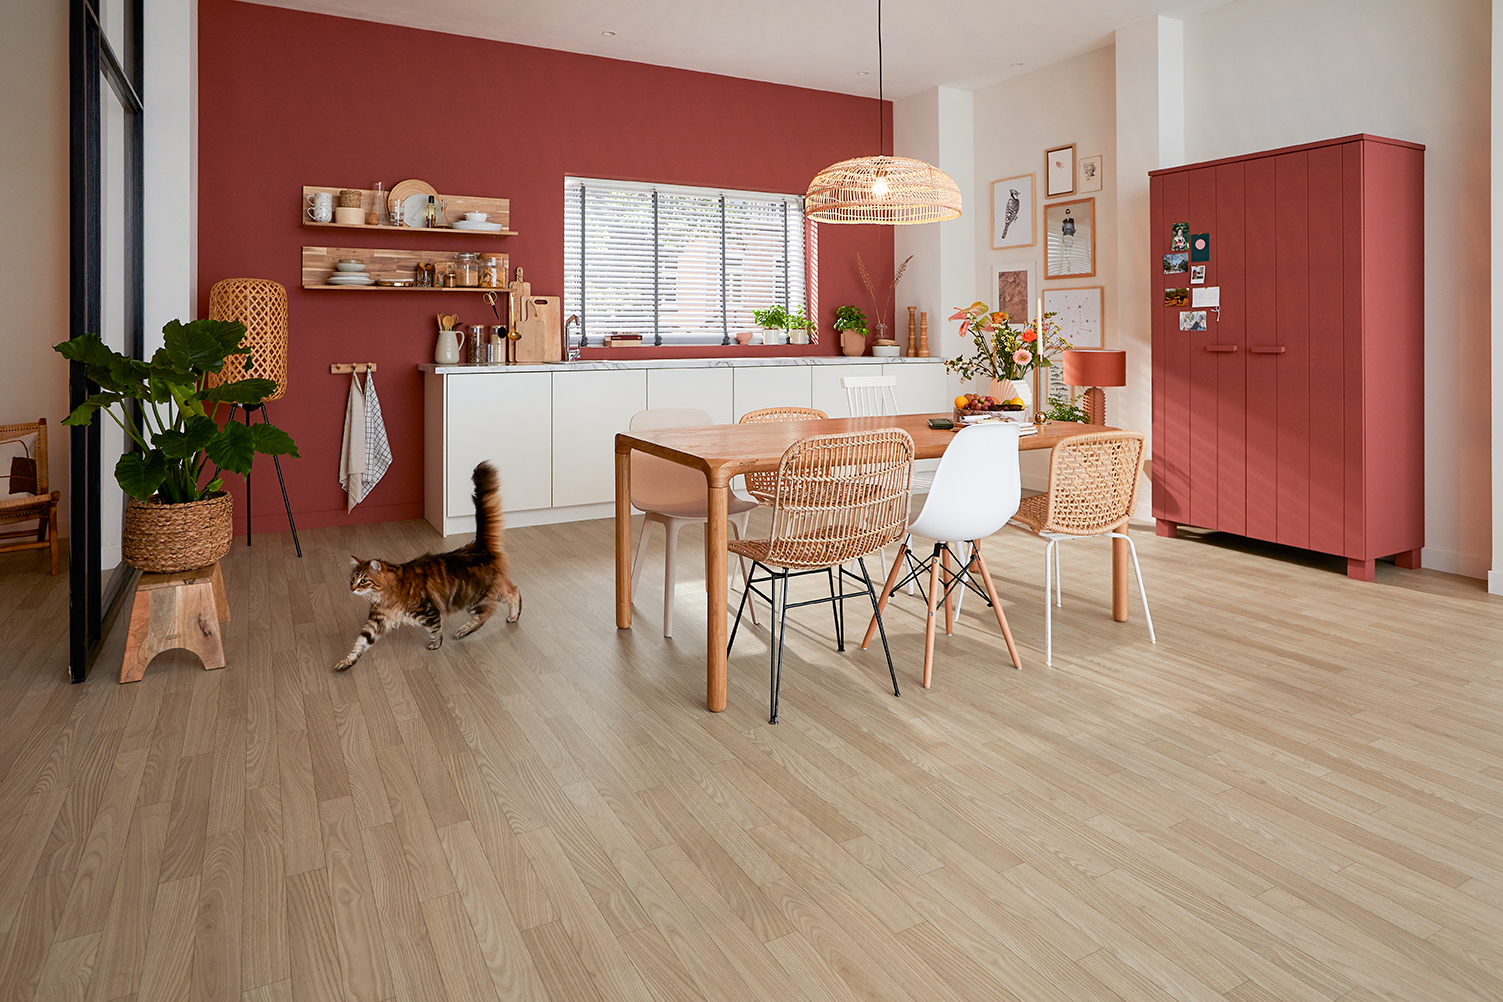 Novilon/5822_BELLA_CASTANEA_LIGHT_CHESTNUT_KITCHEN_SFEER_MODEL.jpg